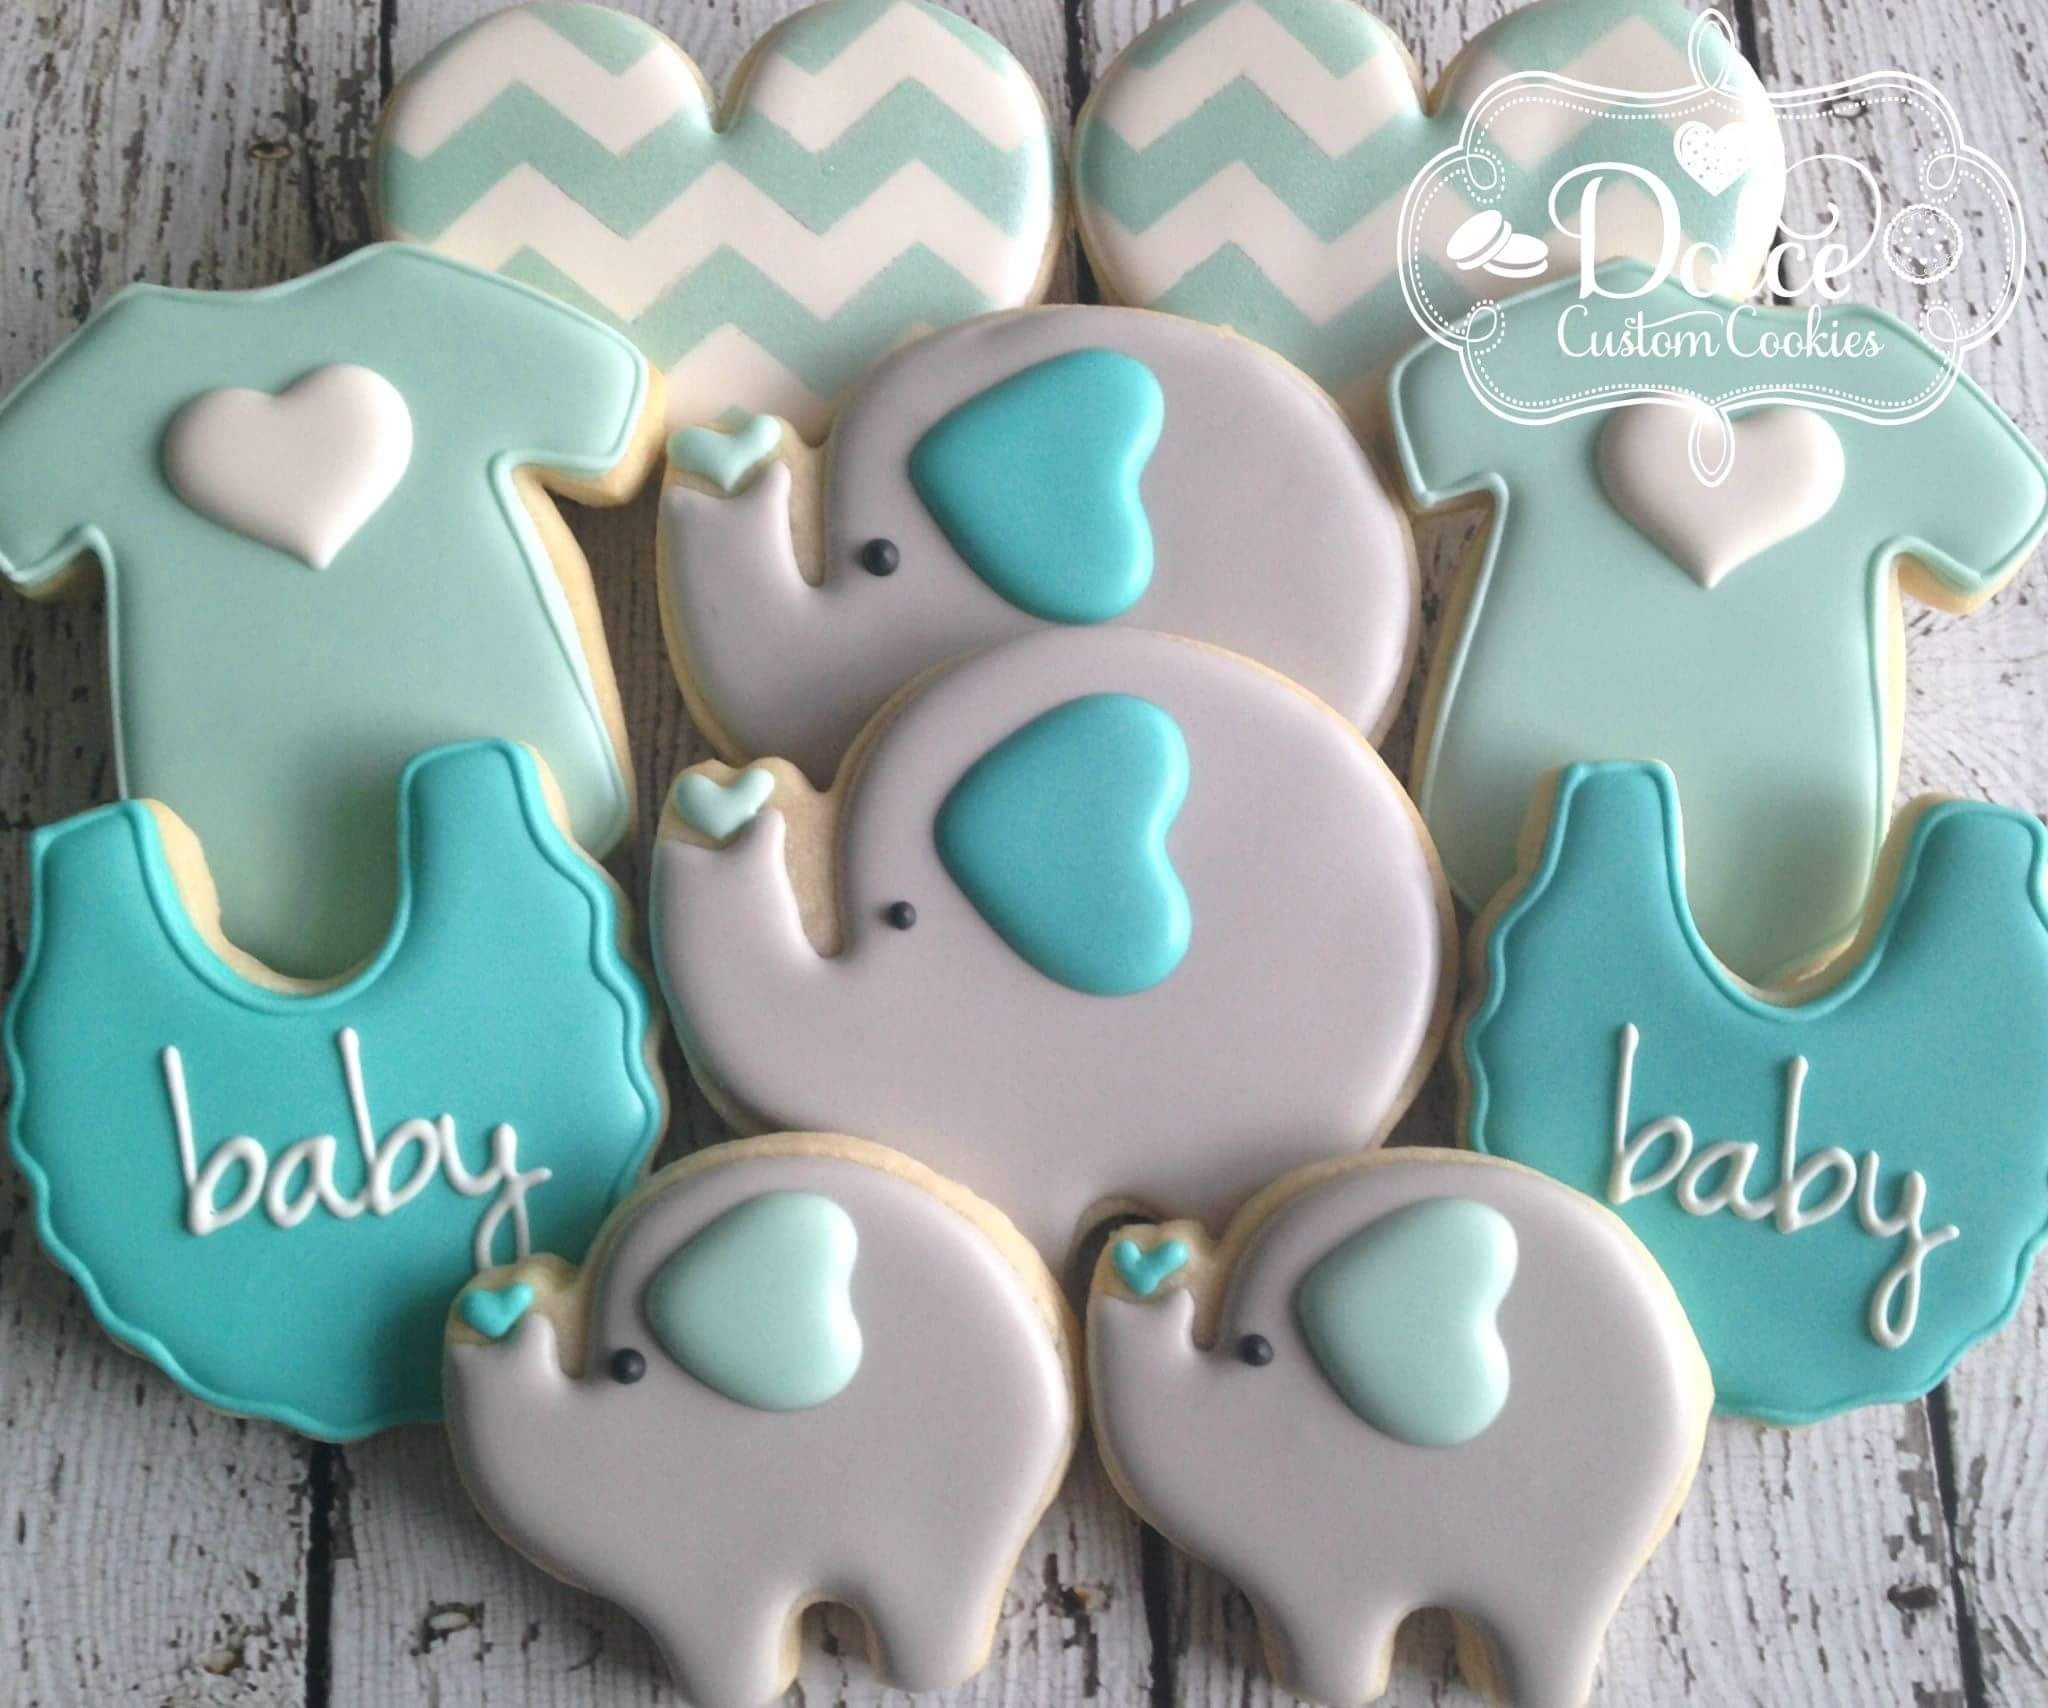 Pin By Yalile On Baby Shower Decorations In 2019 Peanut Baby